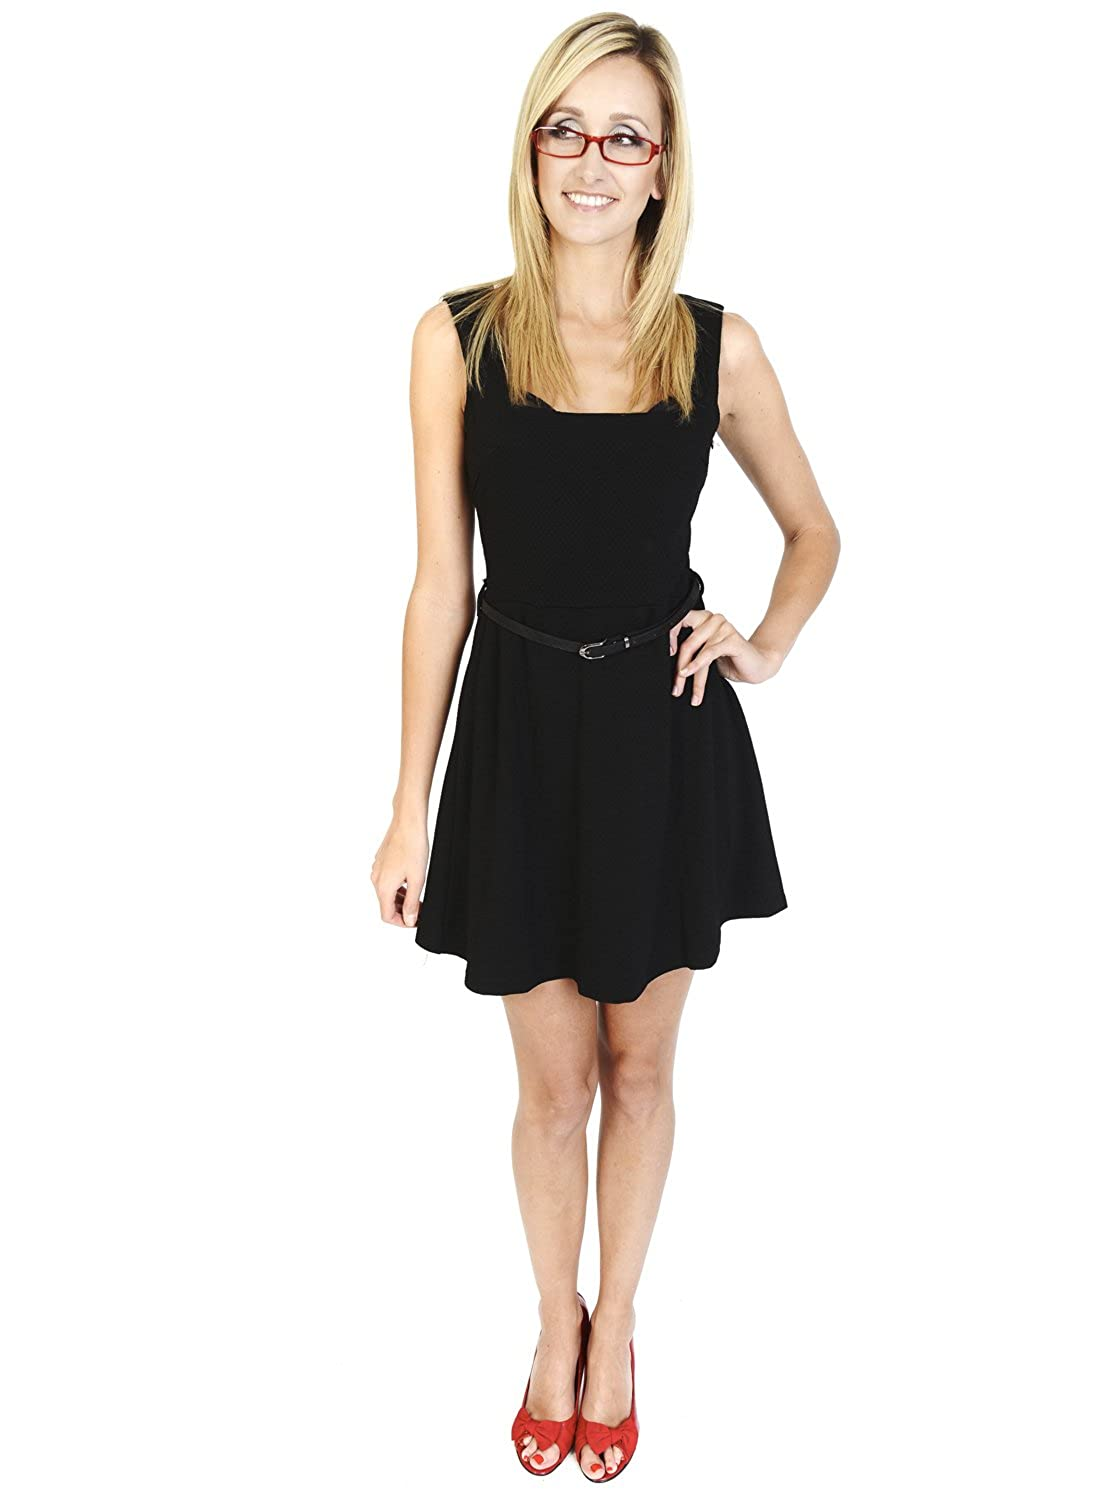 Urmoda Short Sleeveless little black dress Square neckline Party, cocktail, casual Dotty Stretch Black Skater Dress